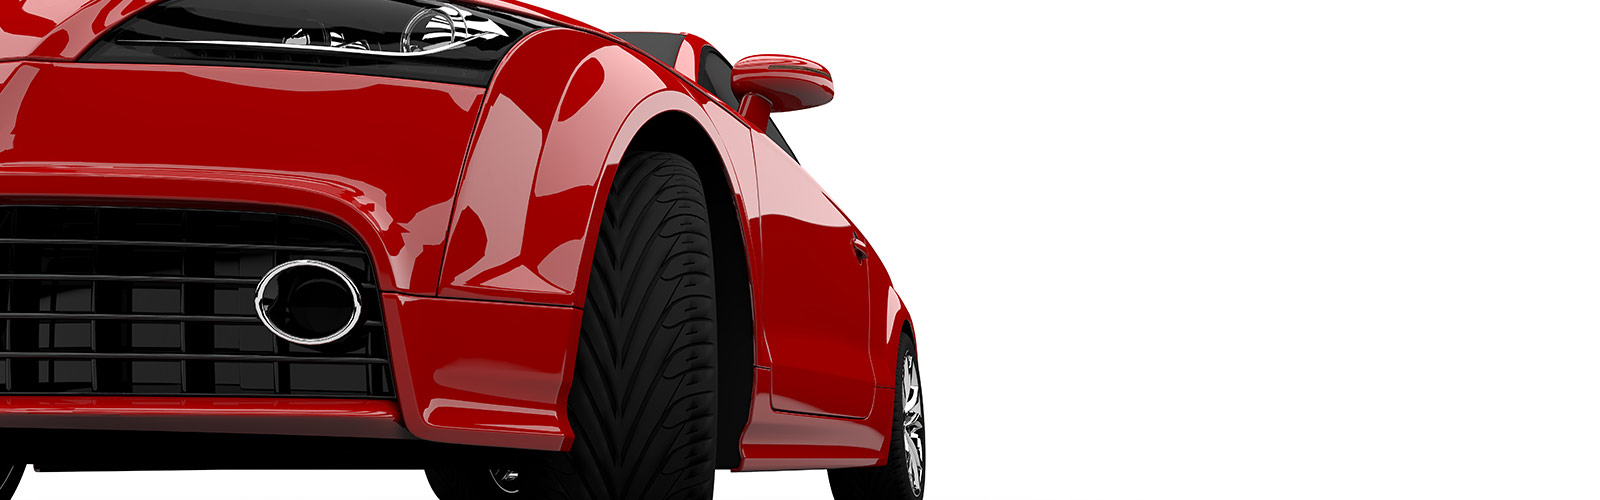 red-car-1600x500